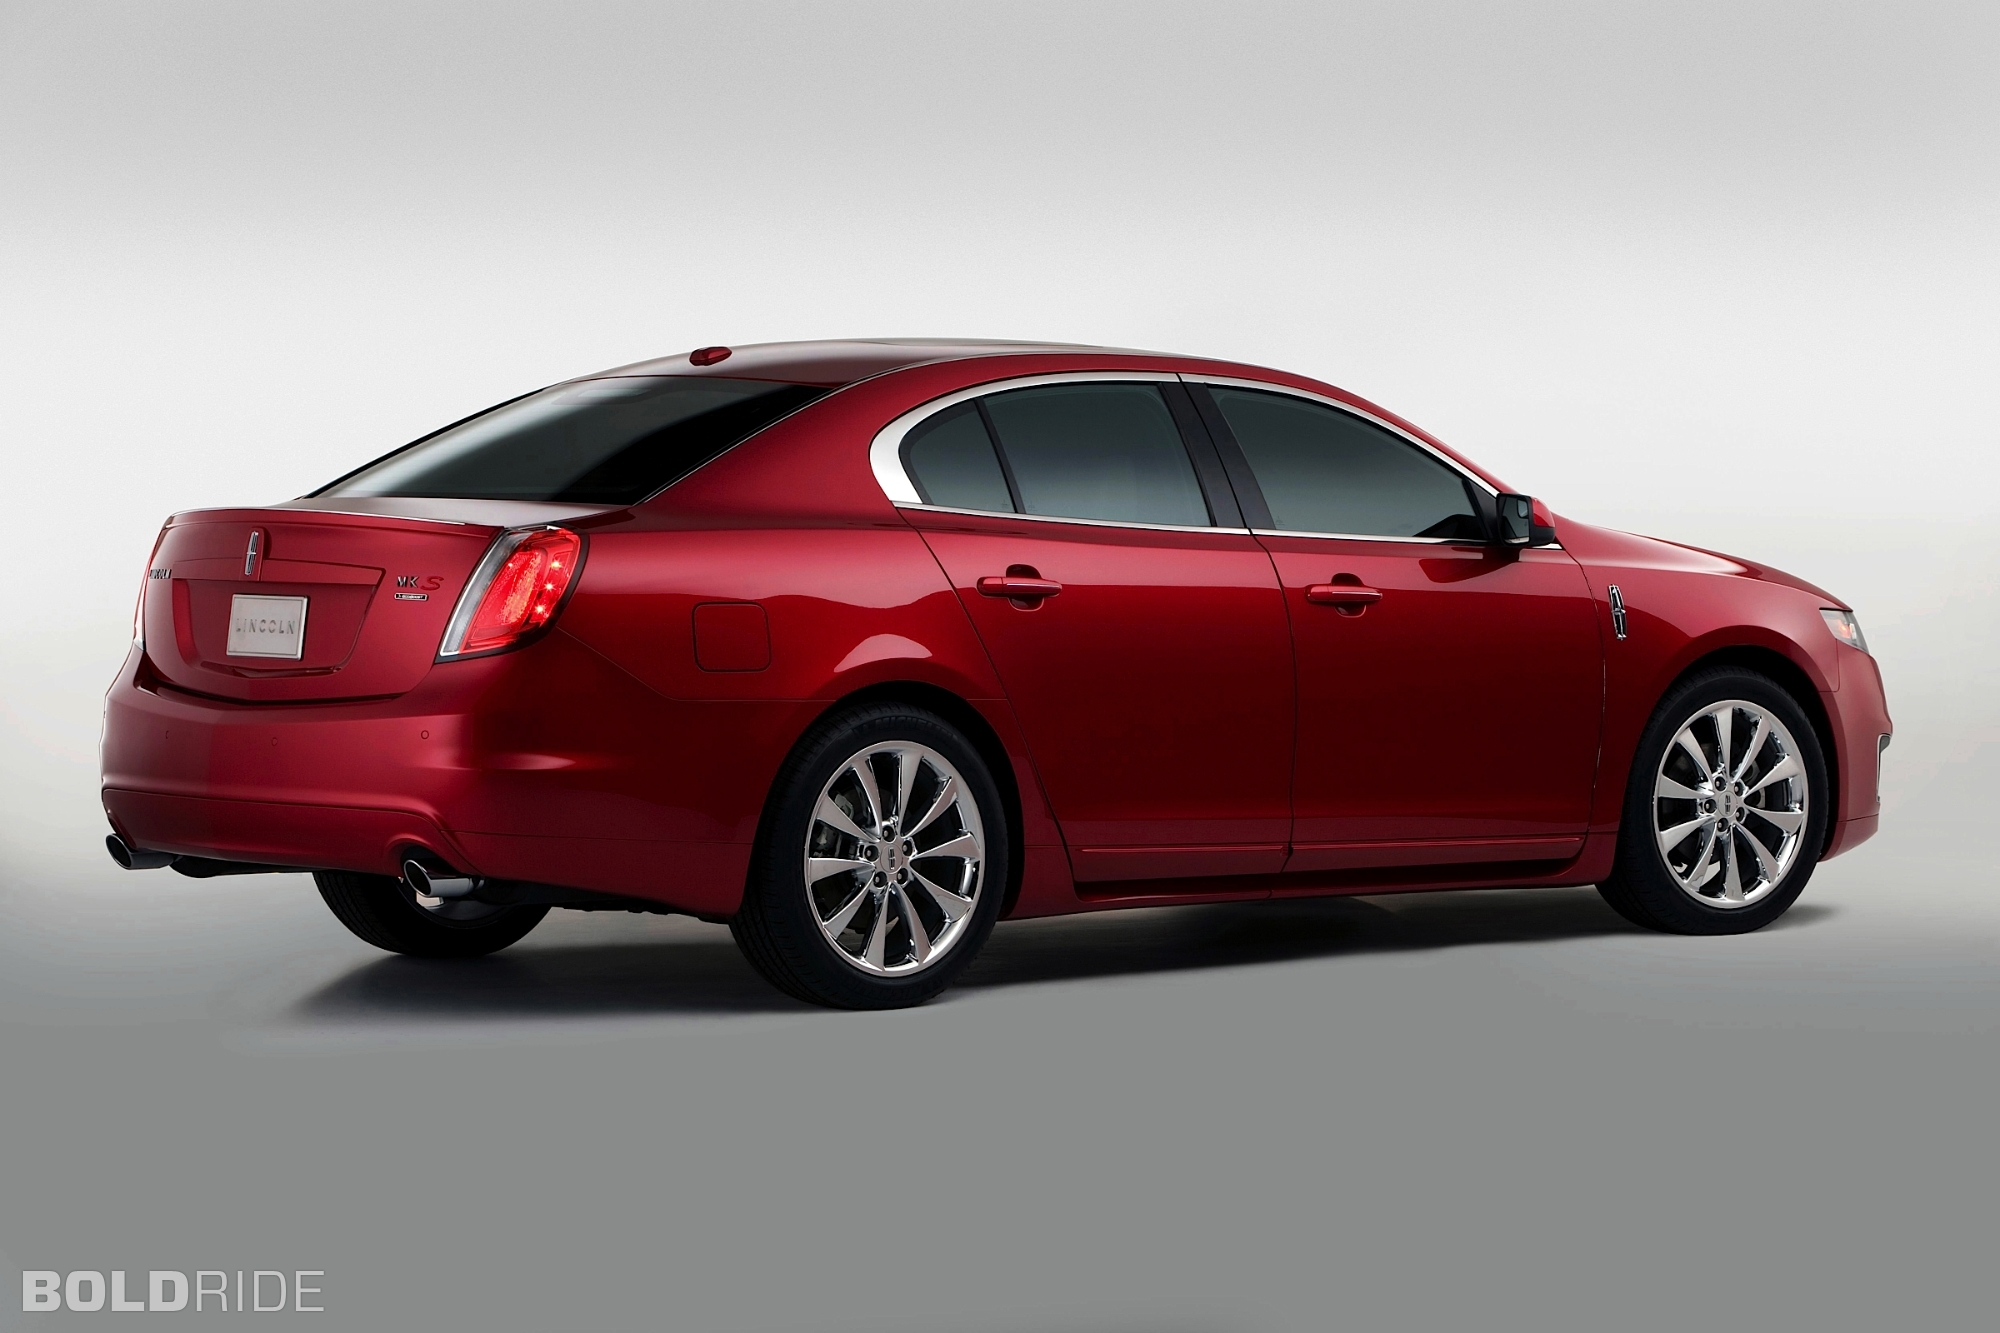 2010 Lincoln Mks Image 16